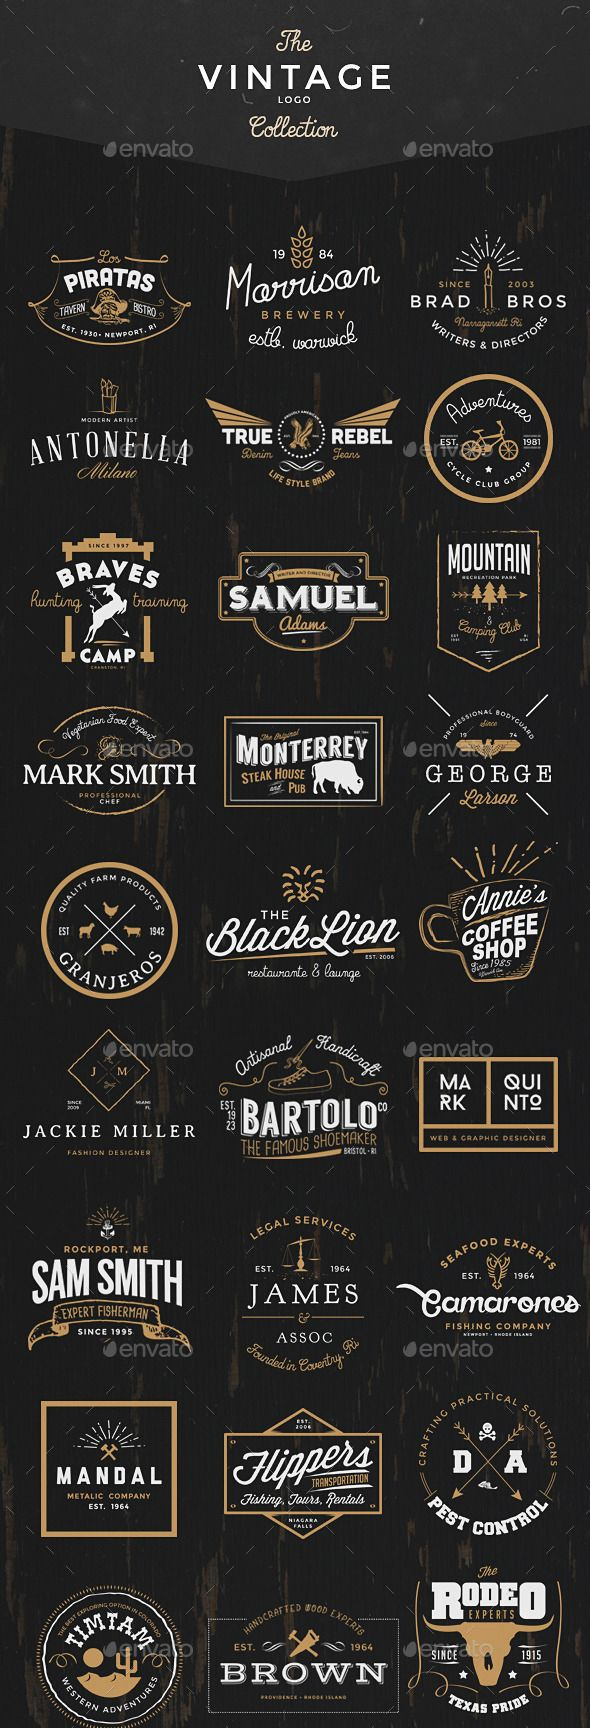 35 Handcrafted logos ideally to start a new branding project. Also, can be used as labels, insignia or badges. The logos were made in Adobe Photoshop, using only free fonts, so it will not be difficult to get them.